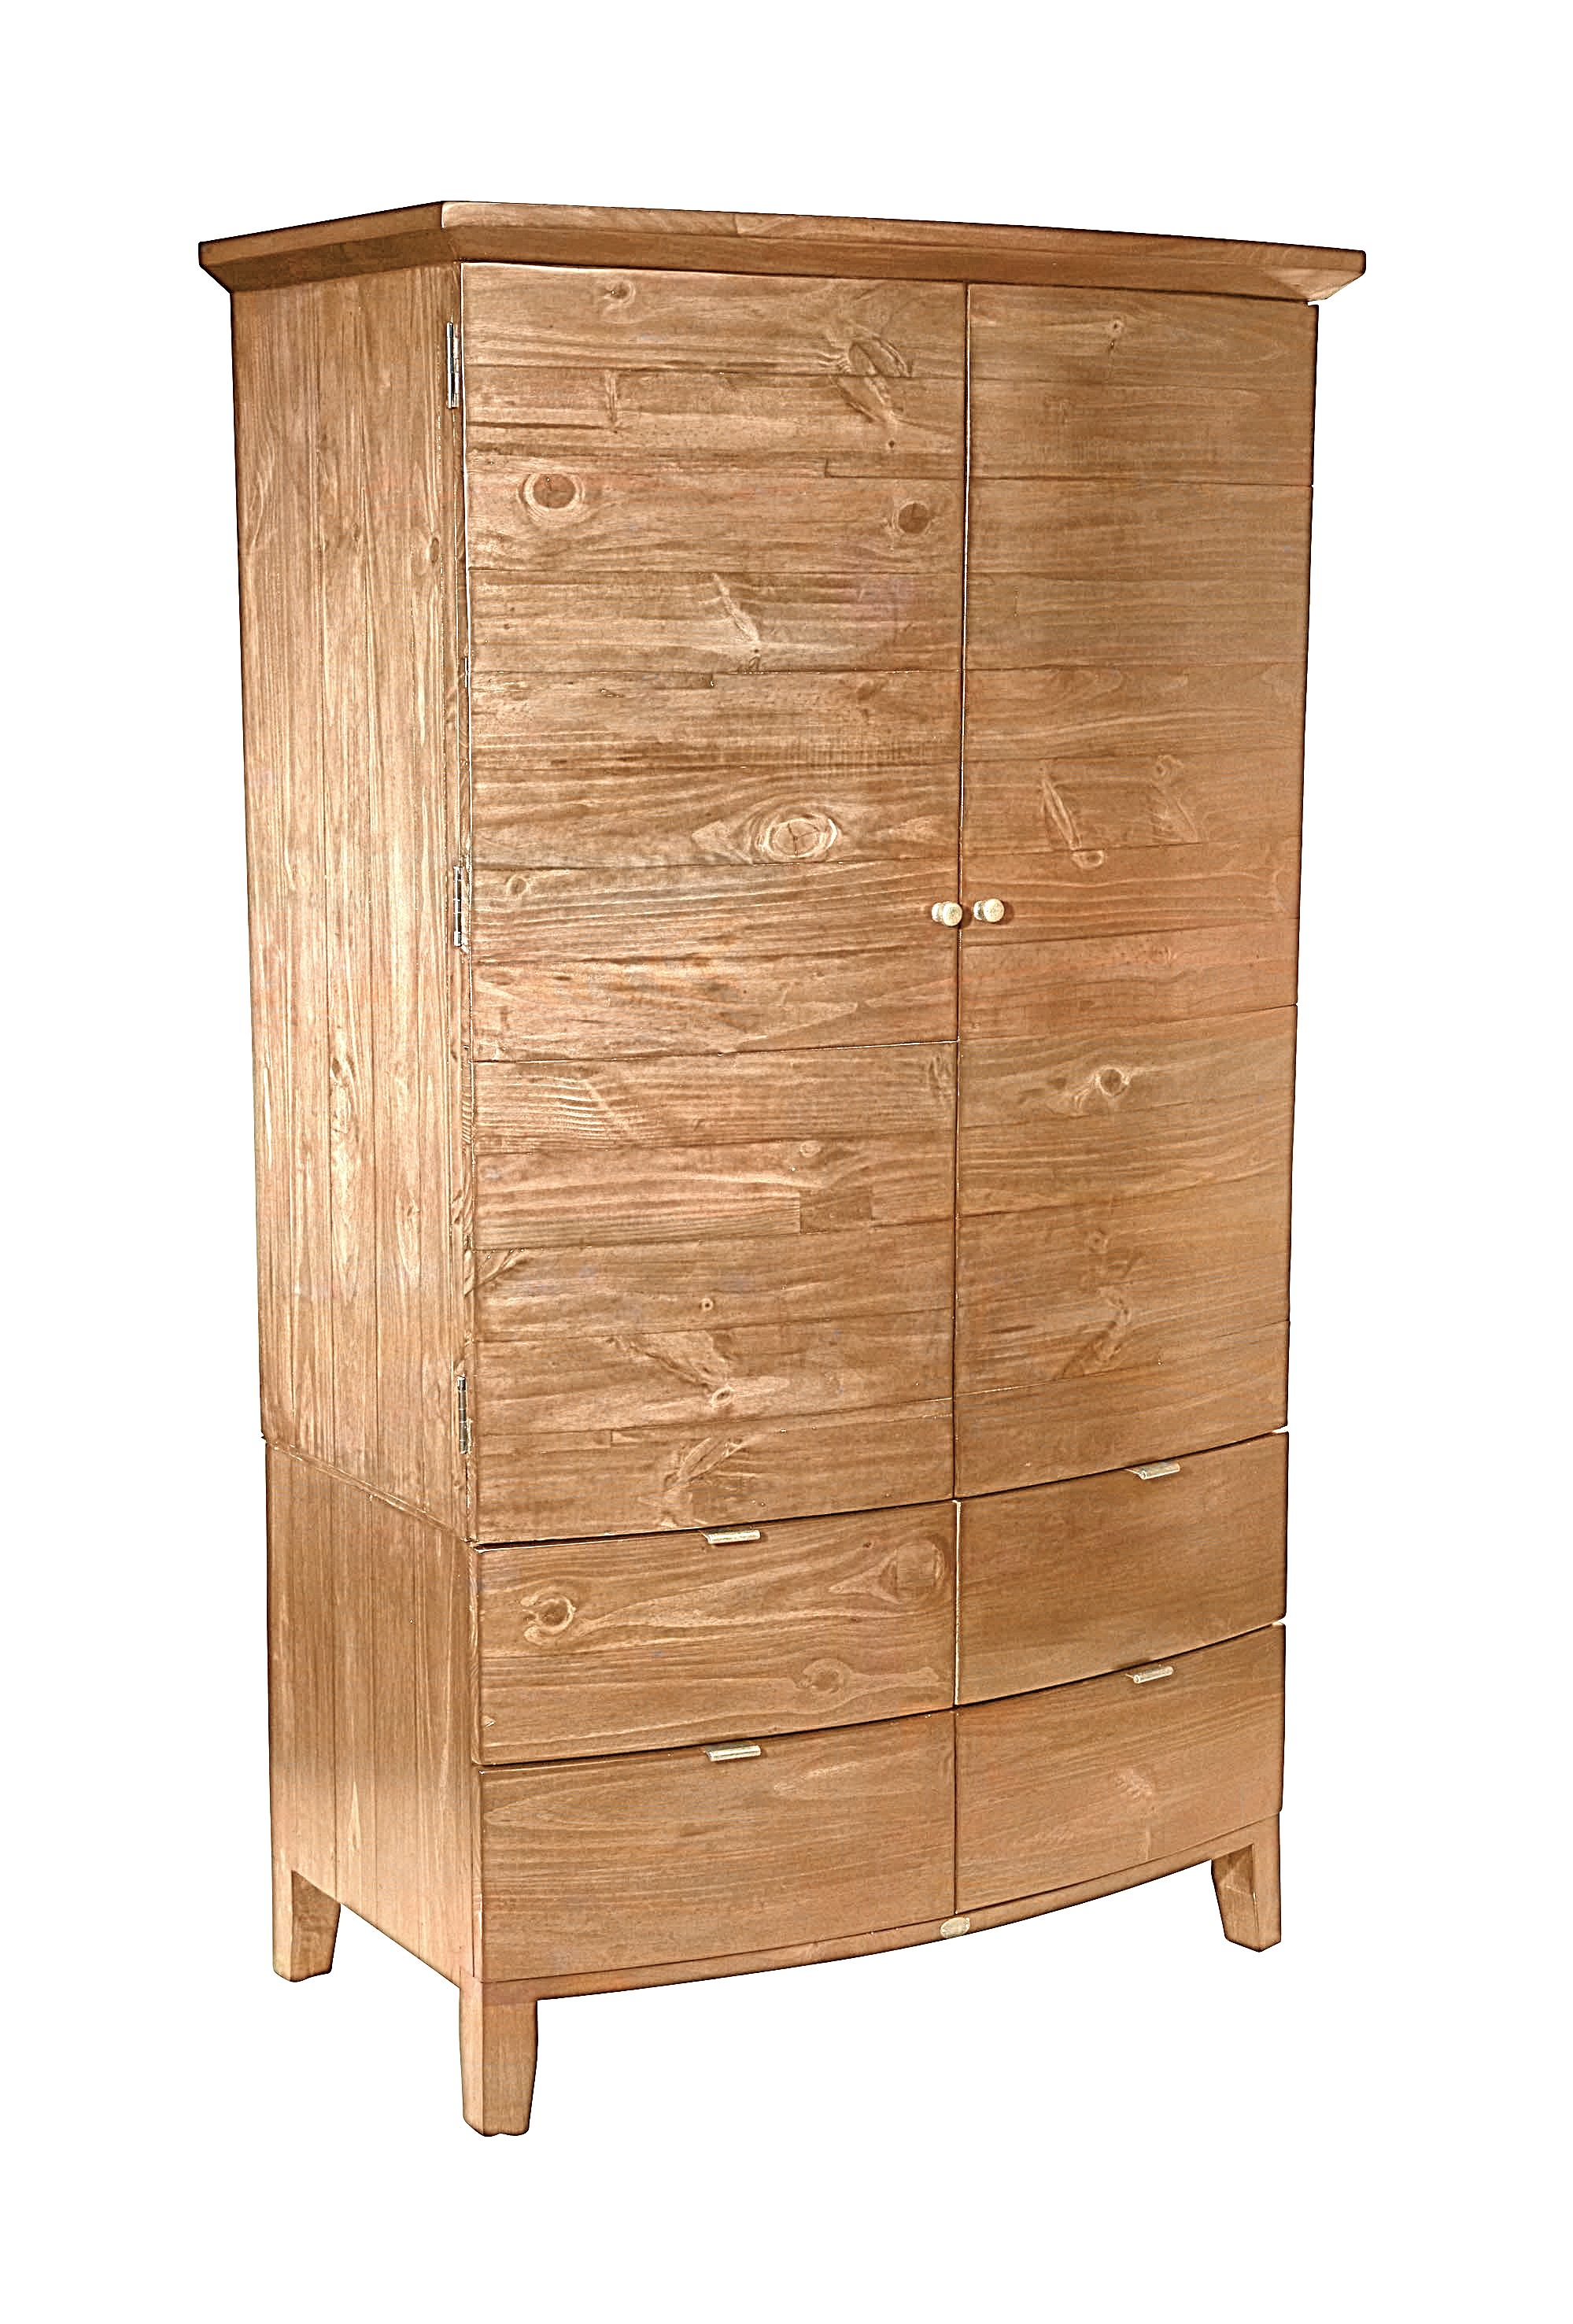 Photo of Linea lyon light double wardrobe with drawers